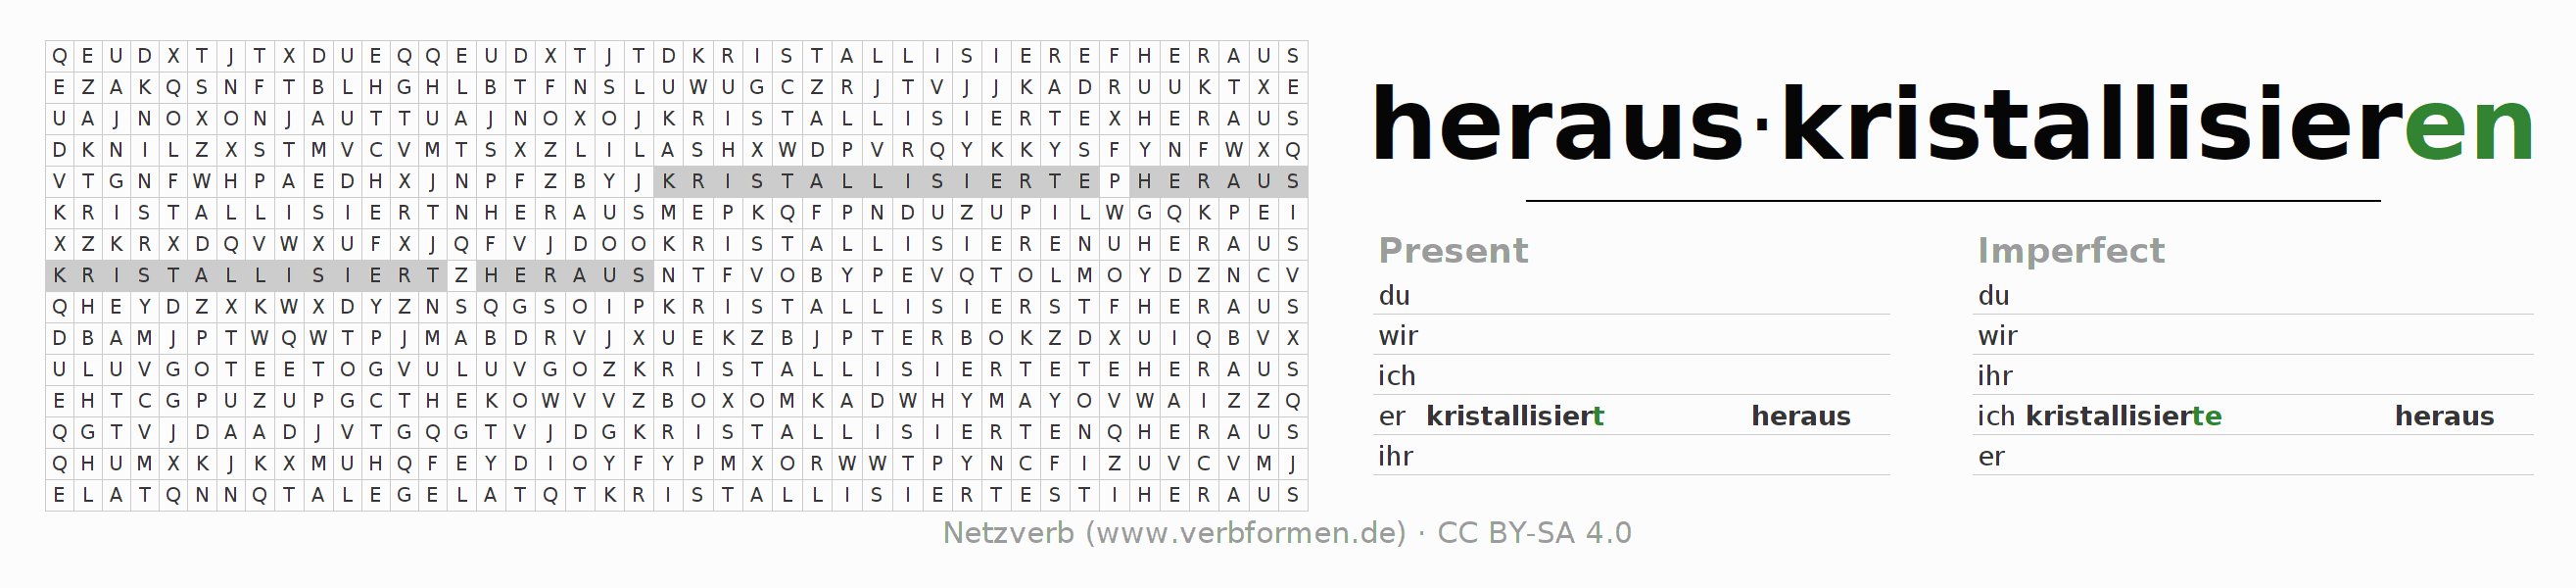 Word search puzzle for the conjugation of the verb herauskristallisieren